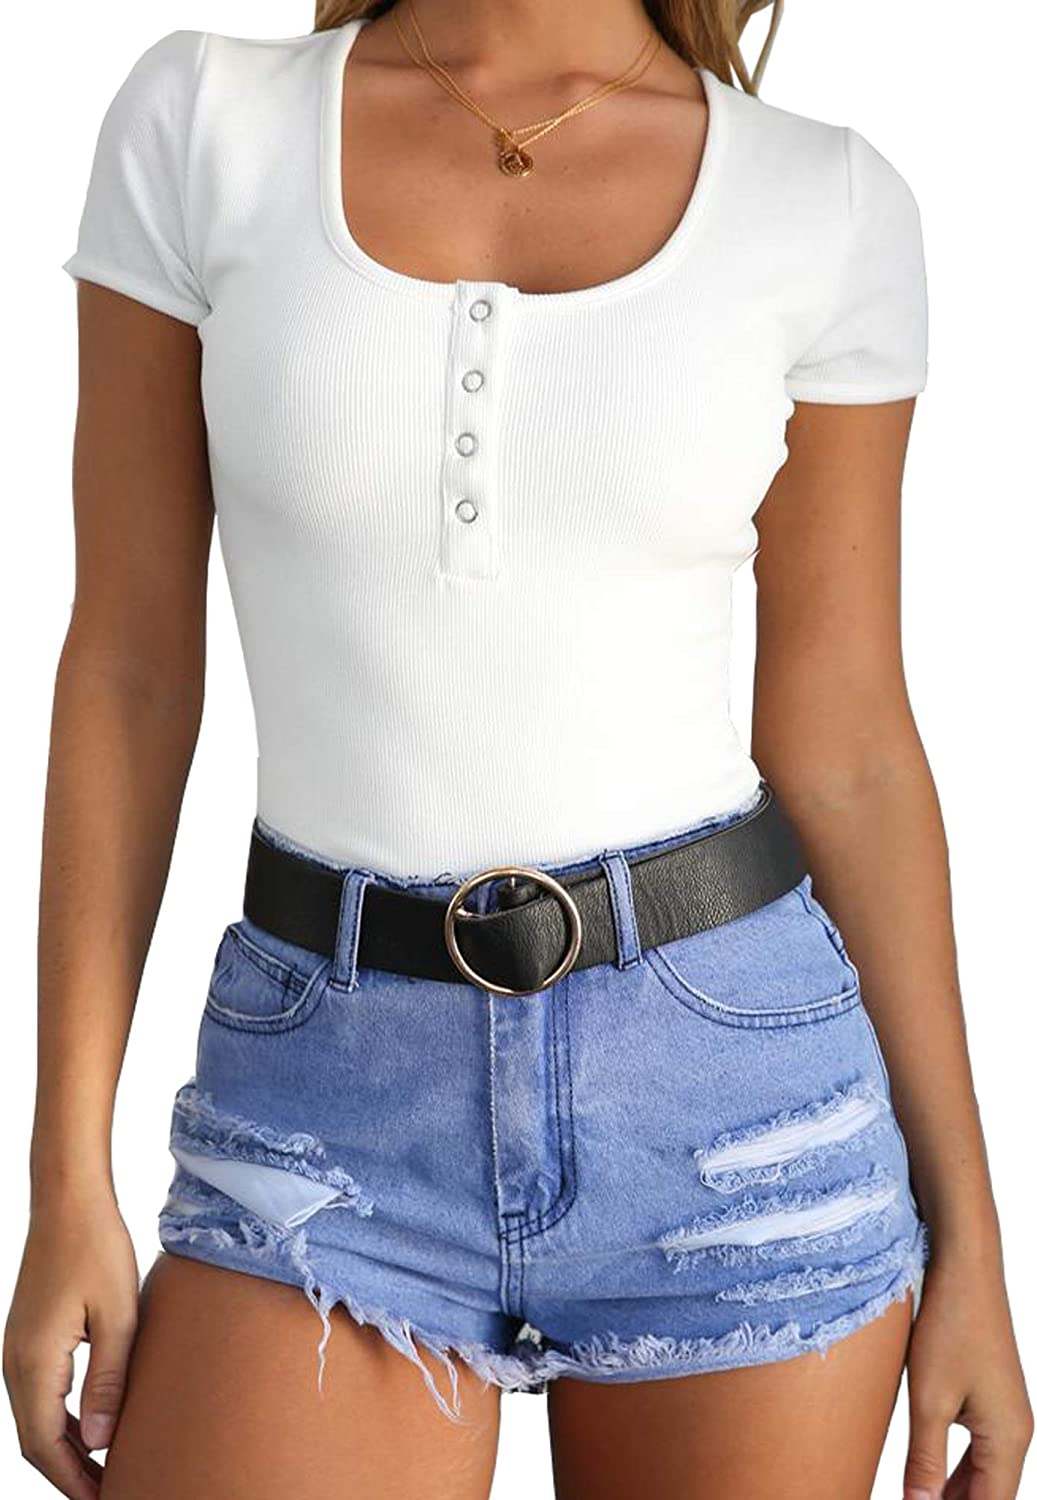 Womens Short Sleeve Button T-Shirt Top Ribbed Cotton Size 12 White PC